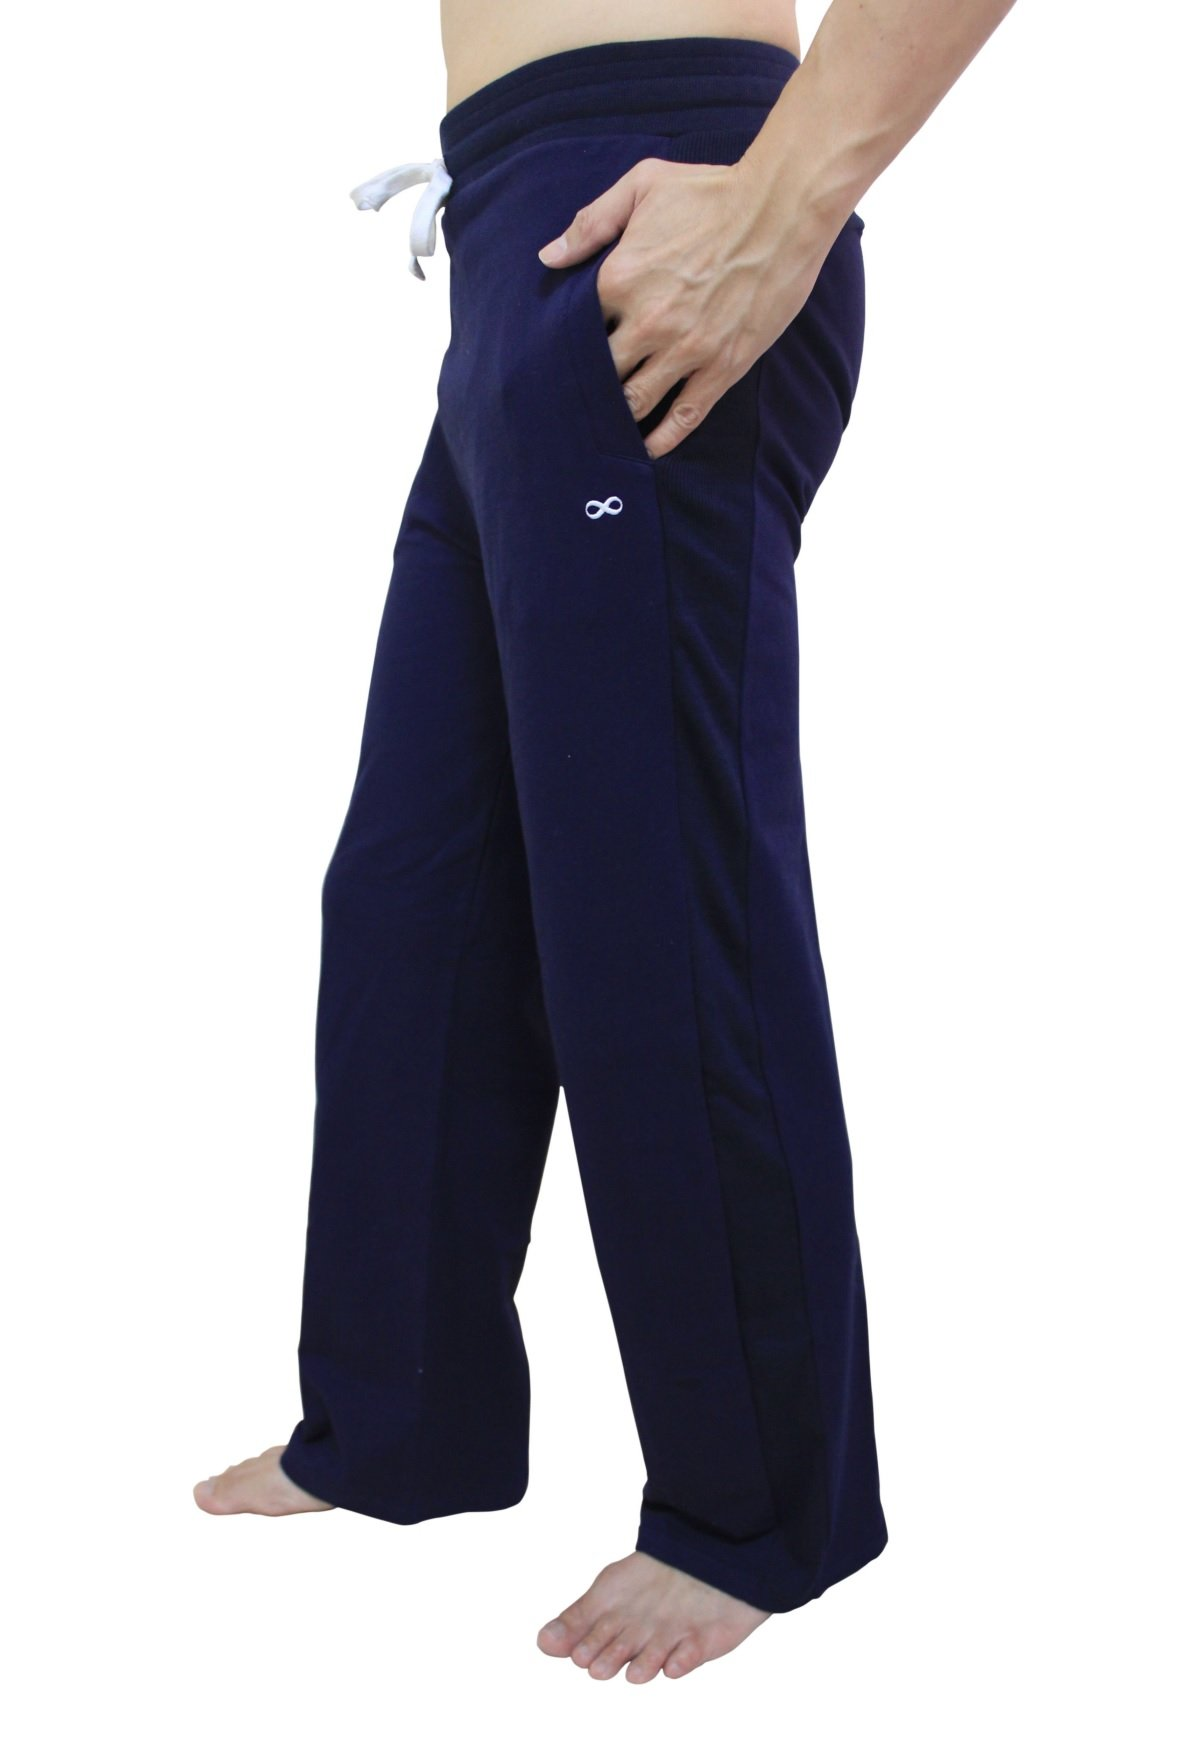 YogaAddict Men Yoga Long Pants, Pilates, Fitness, Workout, Casual, Lounge, Sleep, Martial Arts Pants (Sale Price), Navy Blue - Size L by YogaAddict